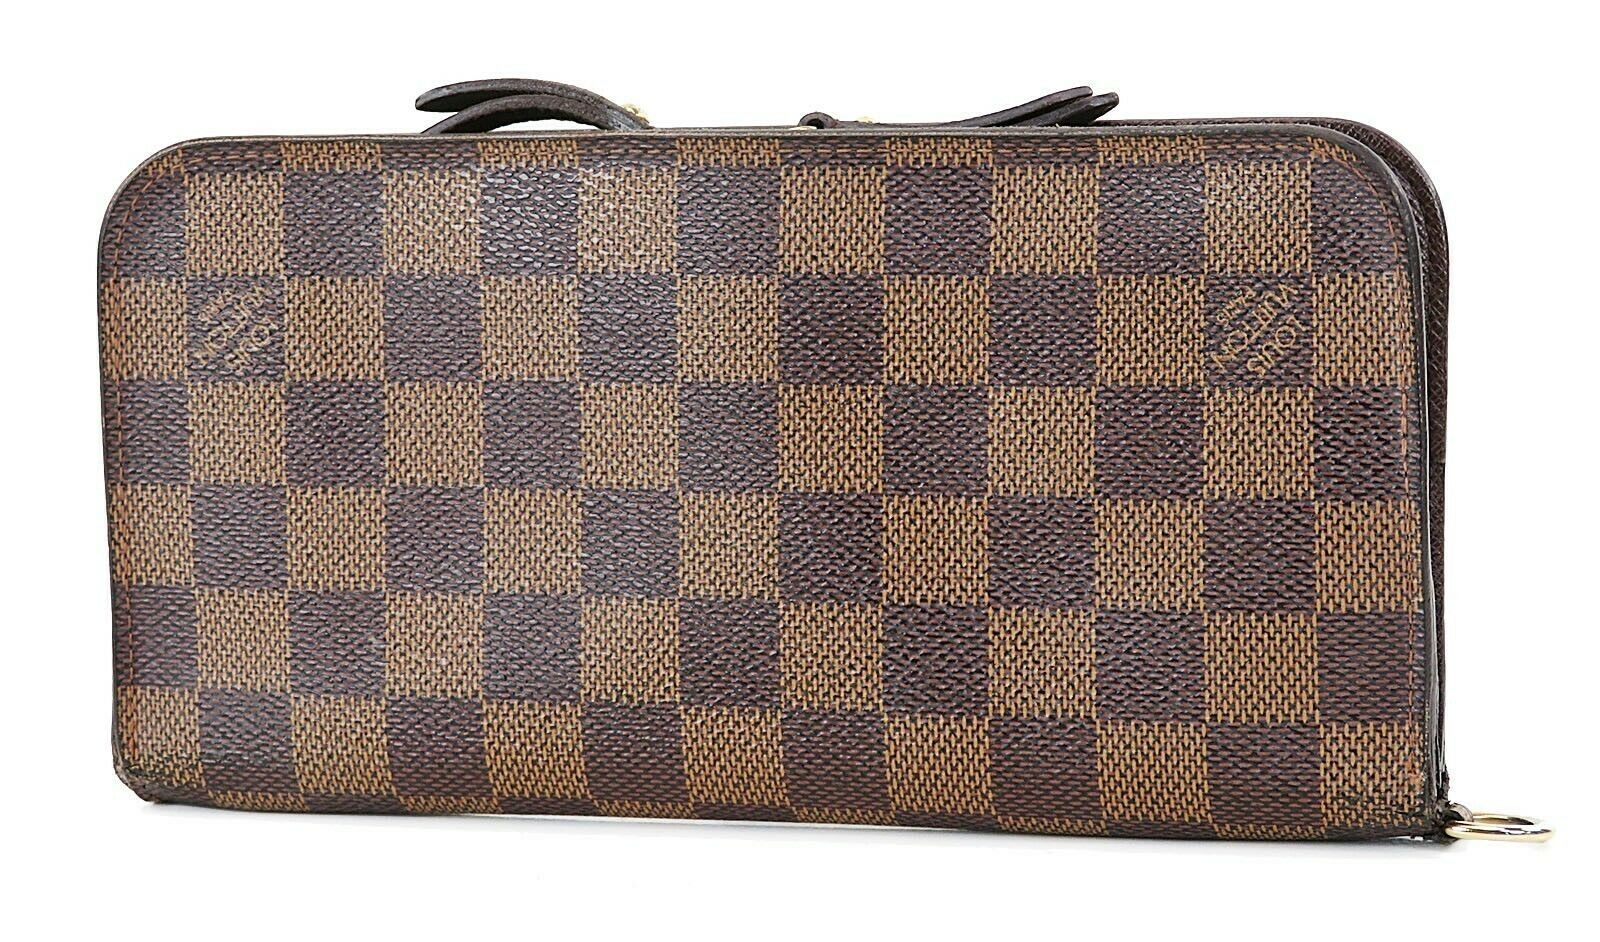 Primary image for Auth LOUIS VUITTON Insolite Damier Ebene Canvas Leather Long Wallet #37023